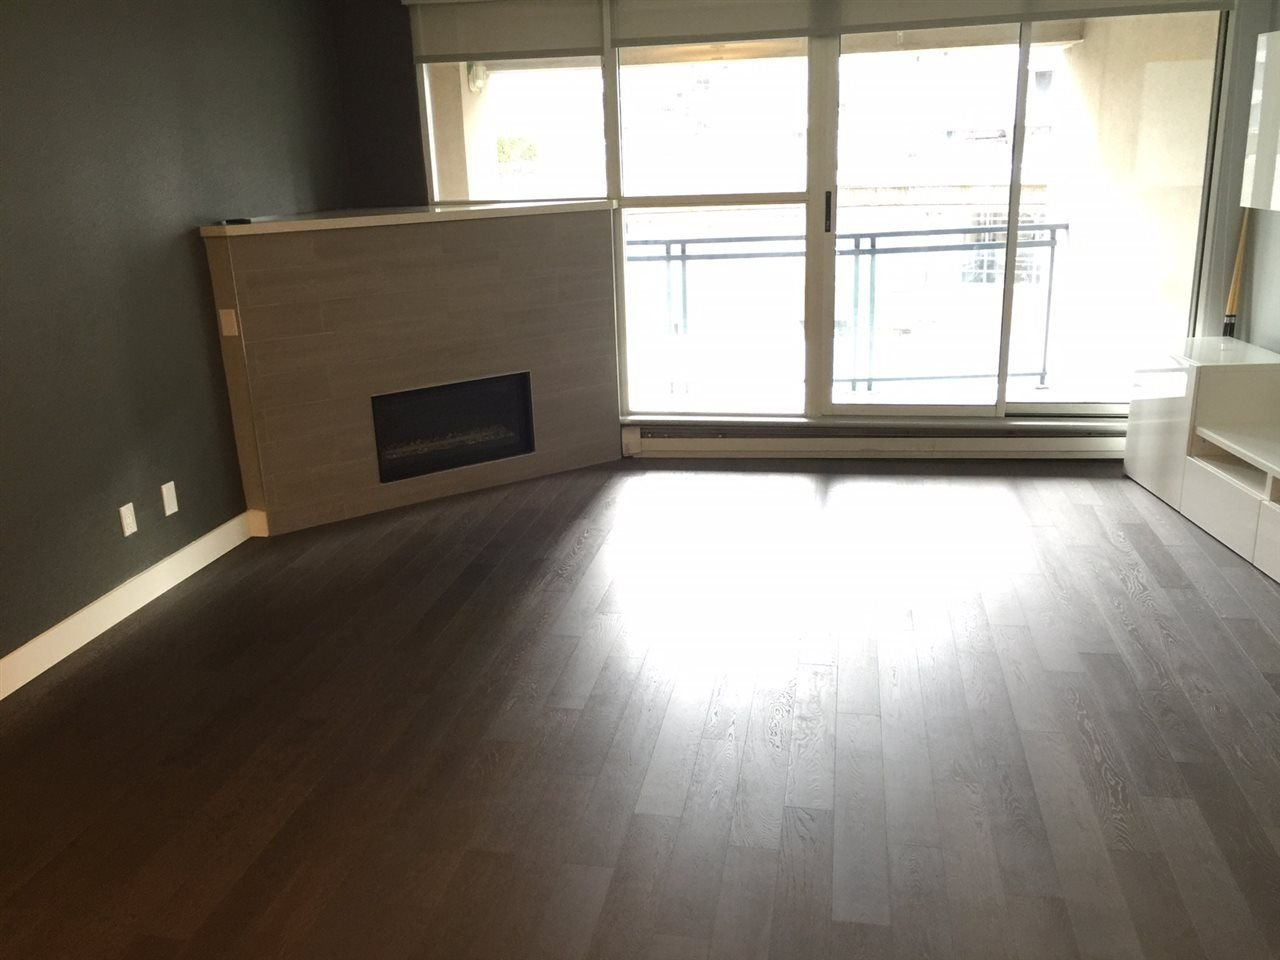 """Photo 16: Photos: 304 183 KEEFER Place in Vancouver: Downtown VW Condo for sale in """"PARIS PLACE"""" (Vancouver West)  : MLS®# R2212938"""